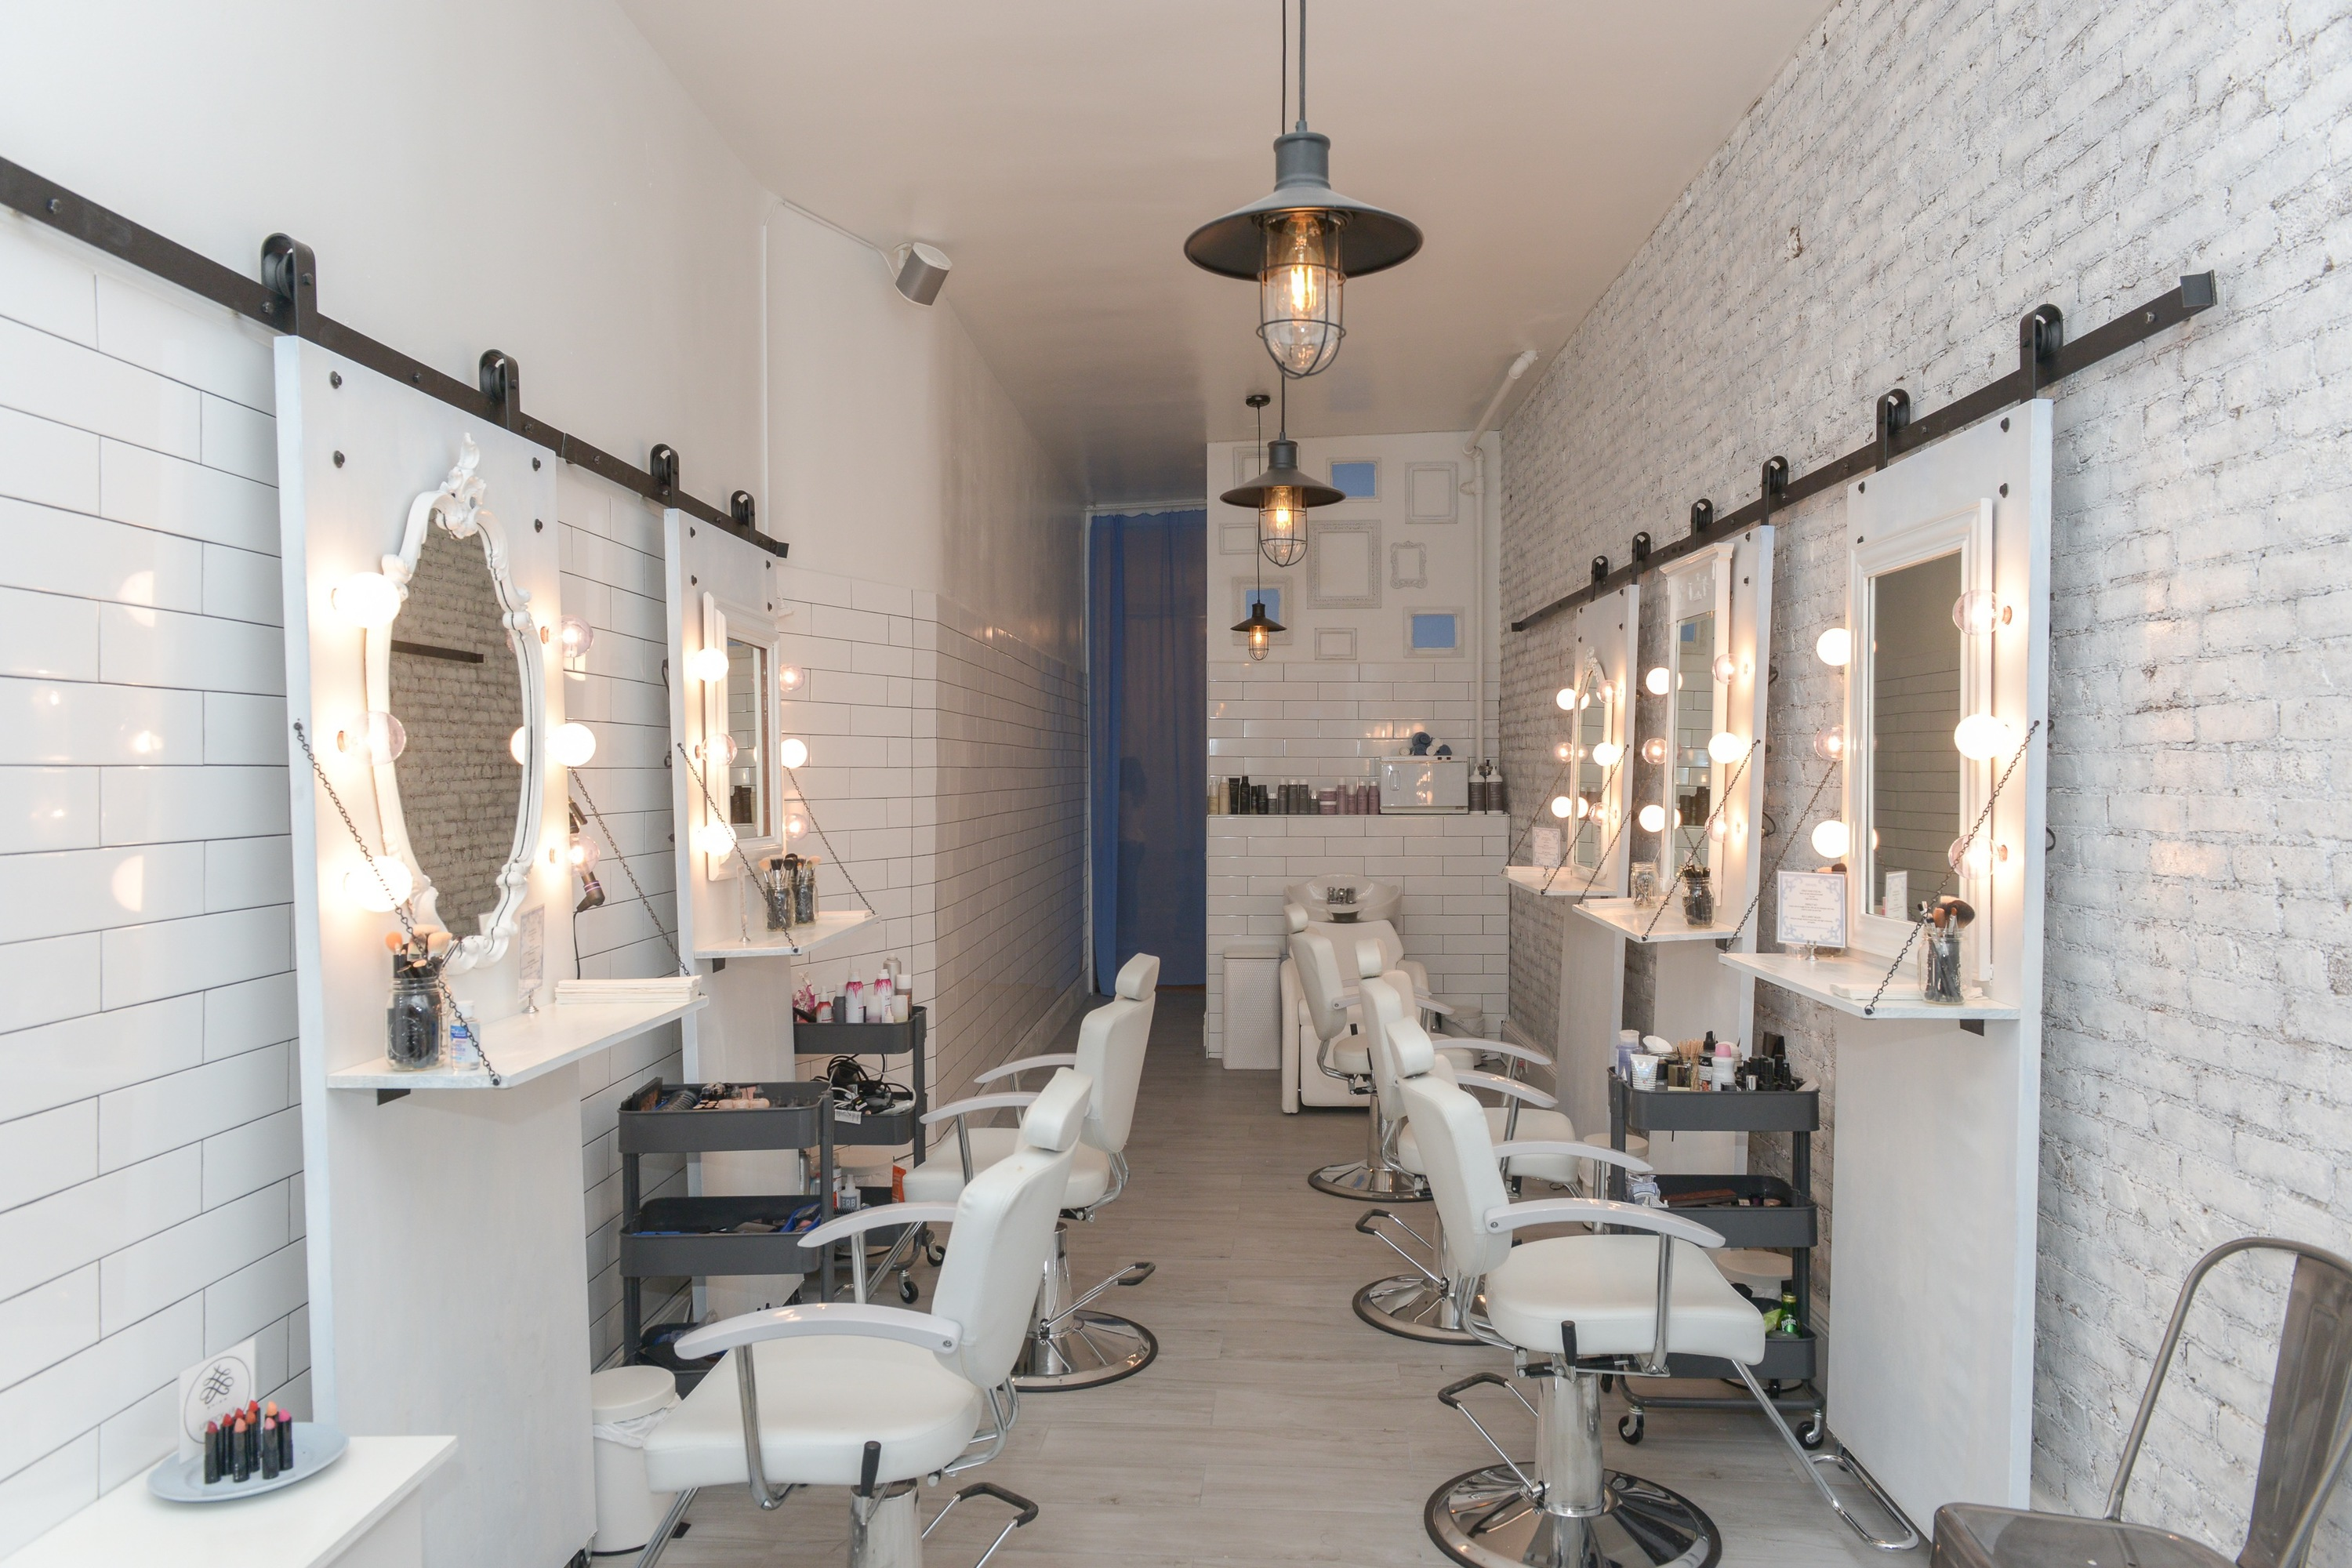 Best places to get eyelash extensions in NYC for a decent price